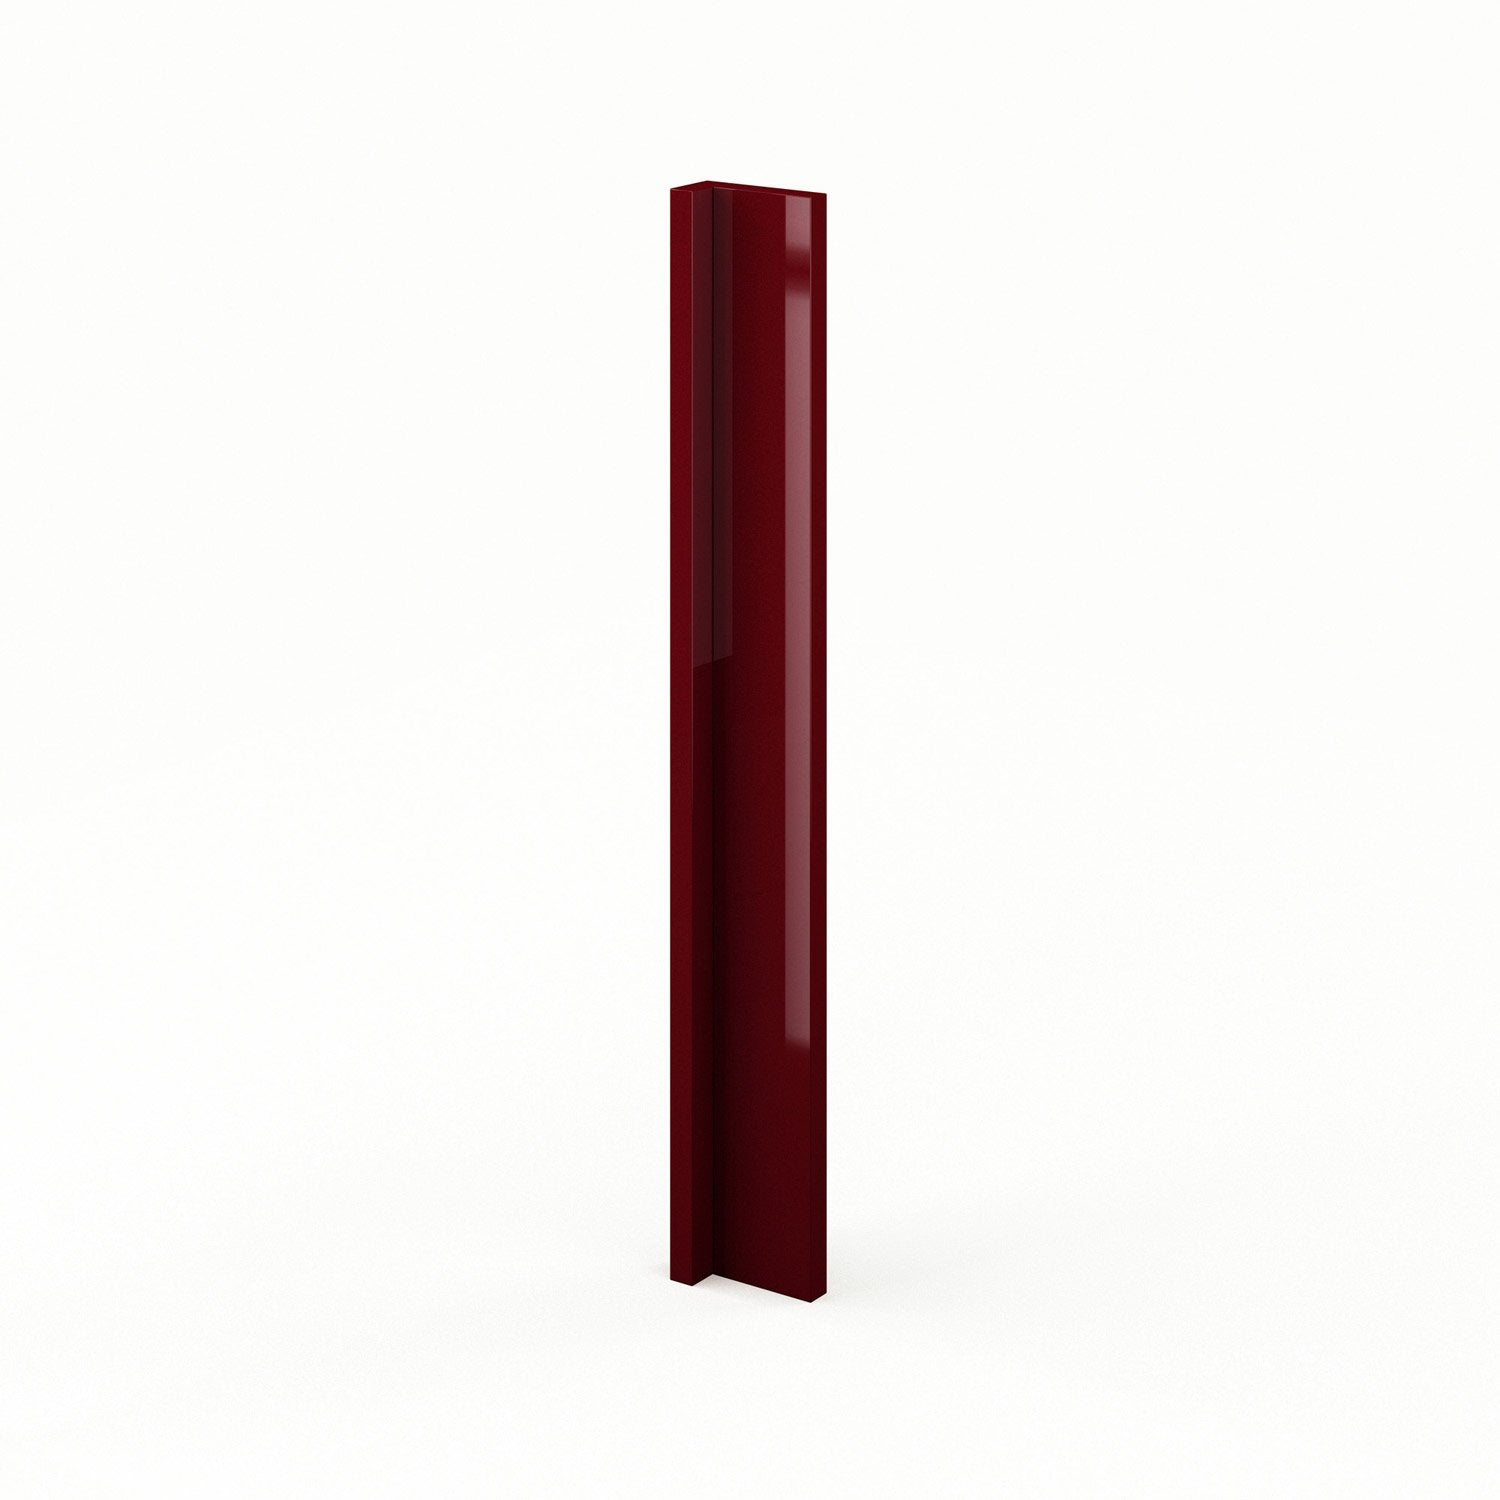 Renovation Salle De Bain Lyon : Finition dangle de cuisine rouge ABAng Griotte, L15 X H70 cm  Leroy